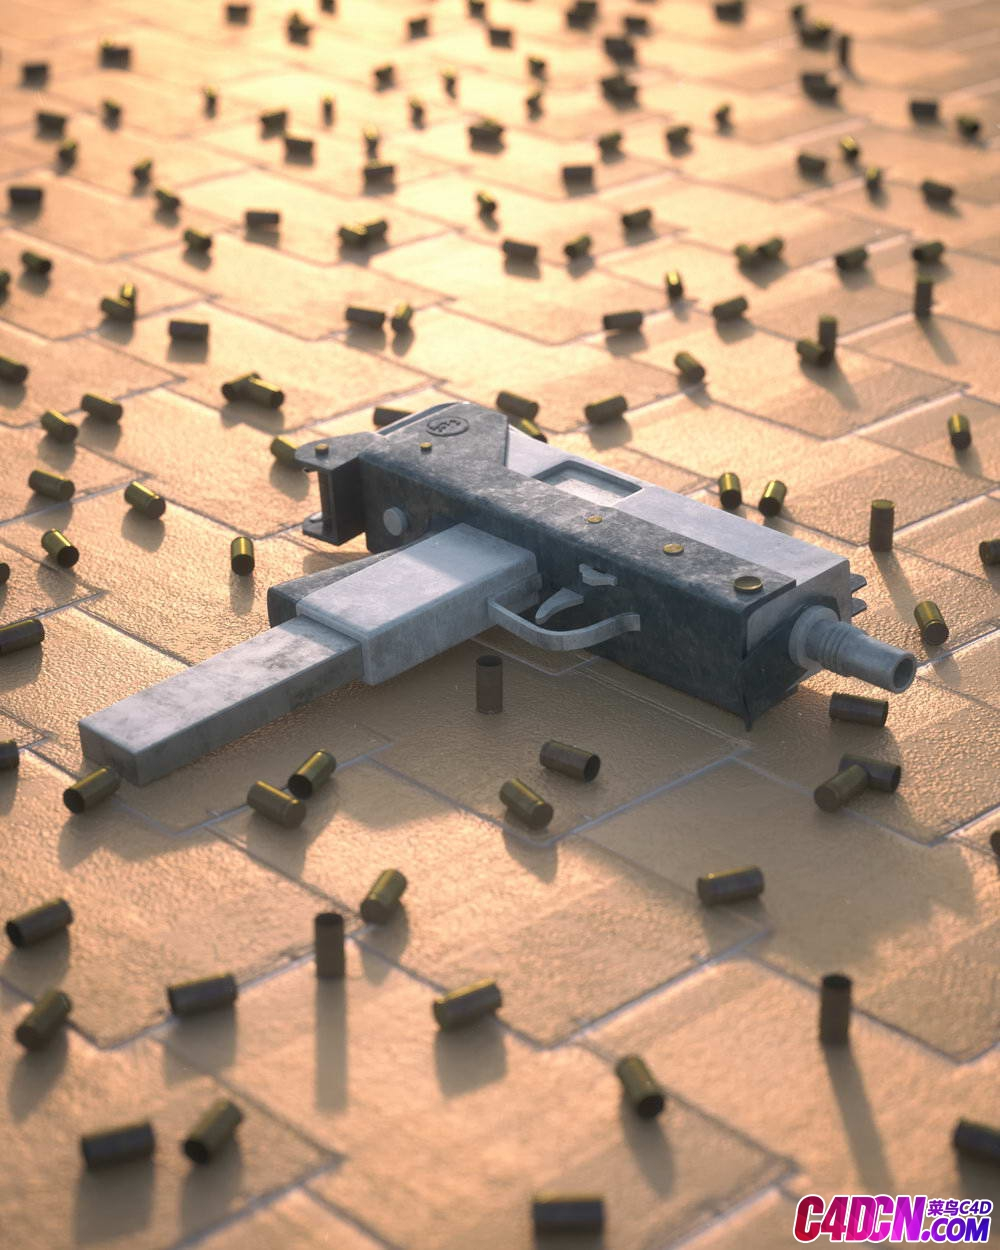 Octane渲染器破旧冲锋枪子弹壳C4D模型 Octane renderer worn out submachine gun bullet shell C4D